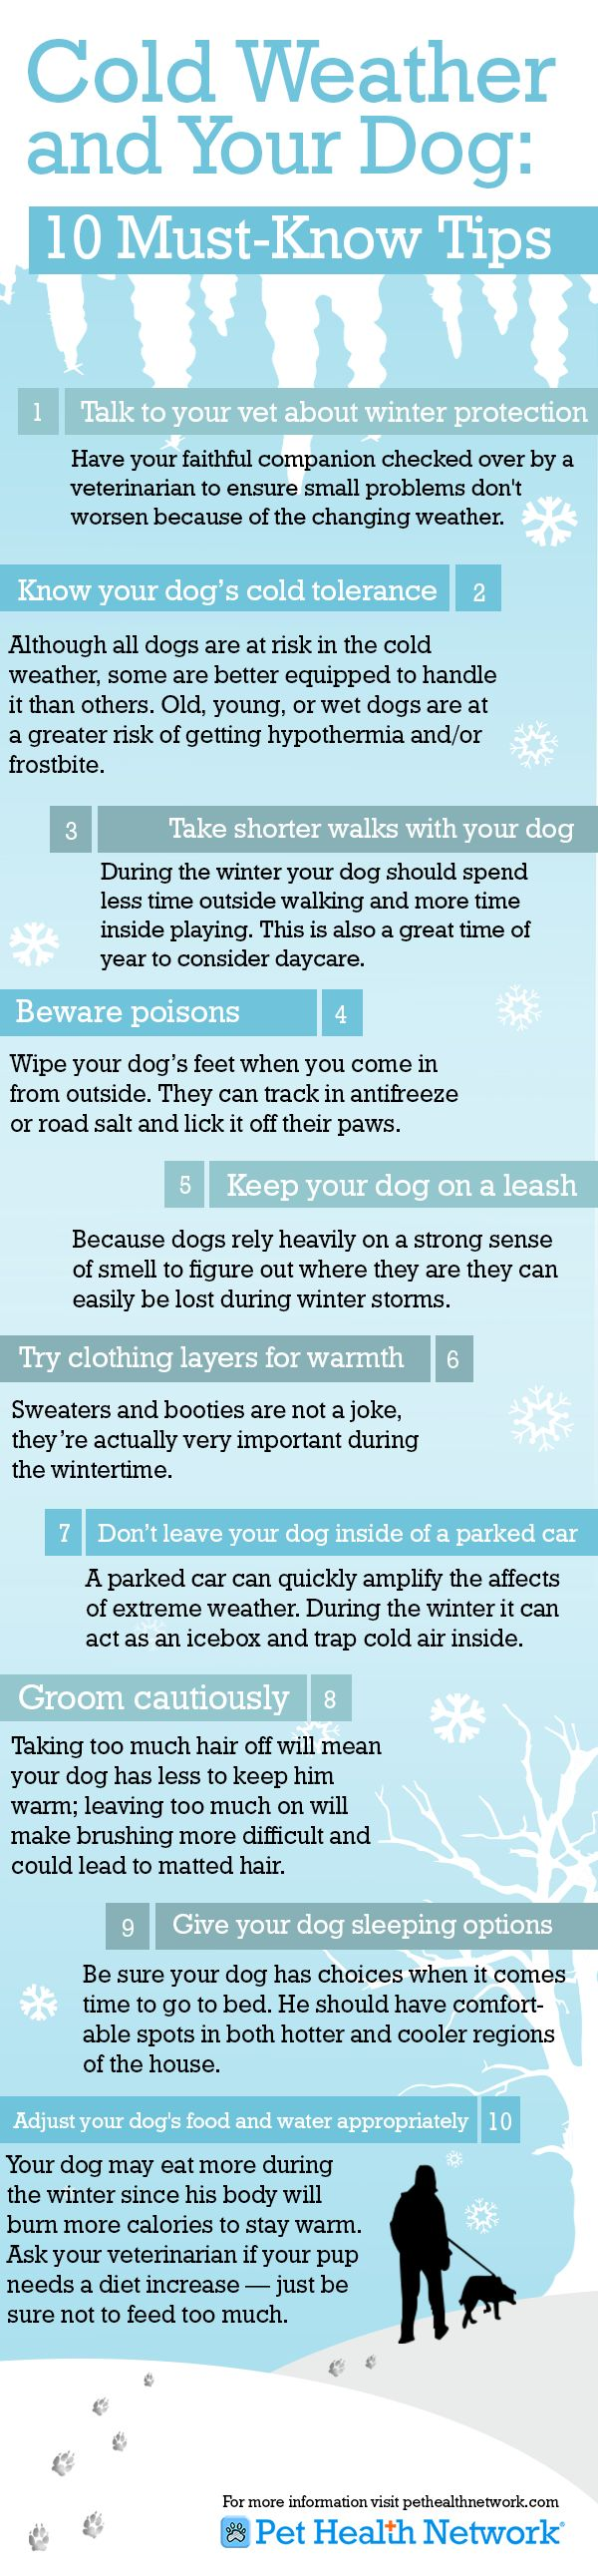 Cold weather tips for dogs. Learn more here: www.aspca.org/pet-care/cold-weather-tips